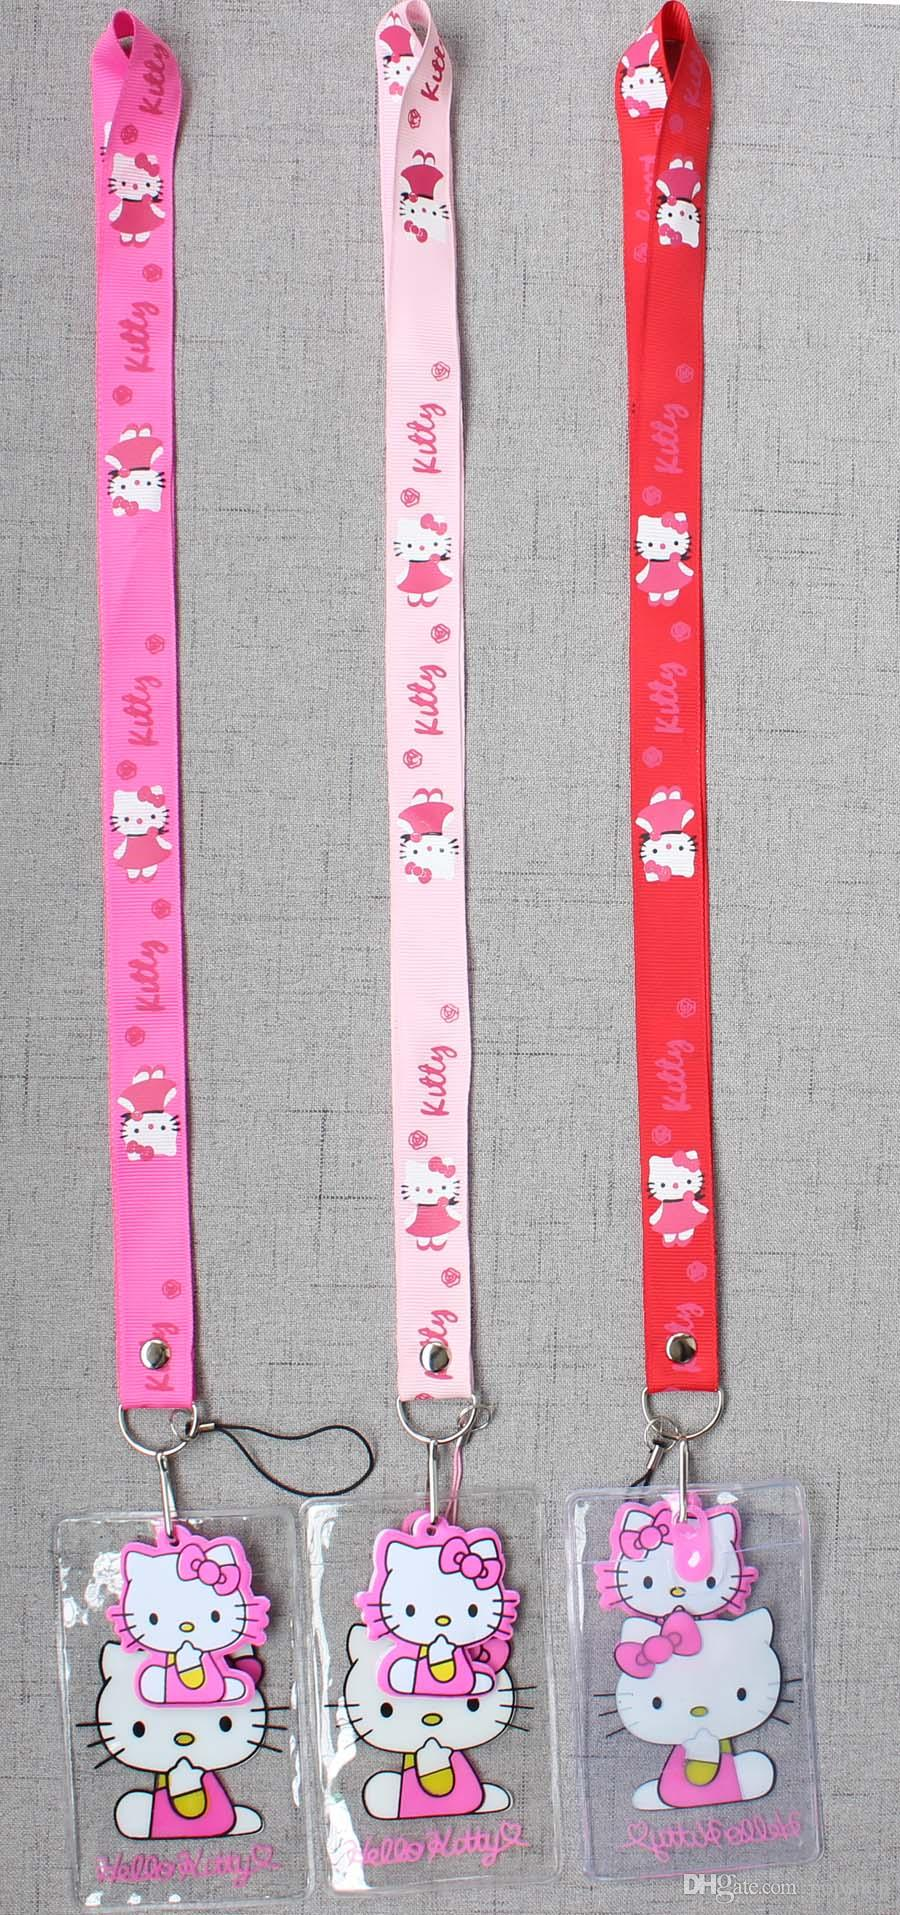 Hello Kitty Red Lanyard with Name Badge /& Hello Kitty Charm With Tracking